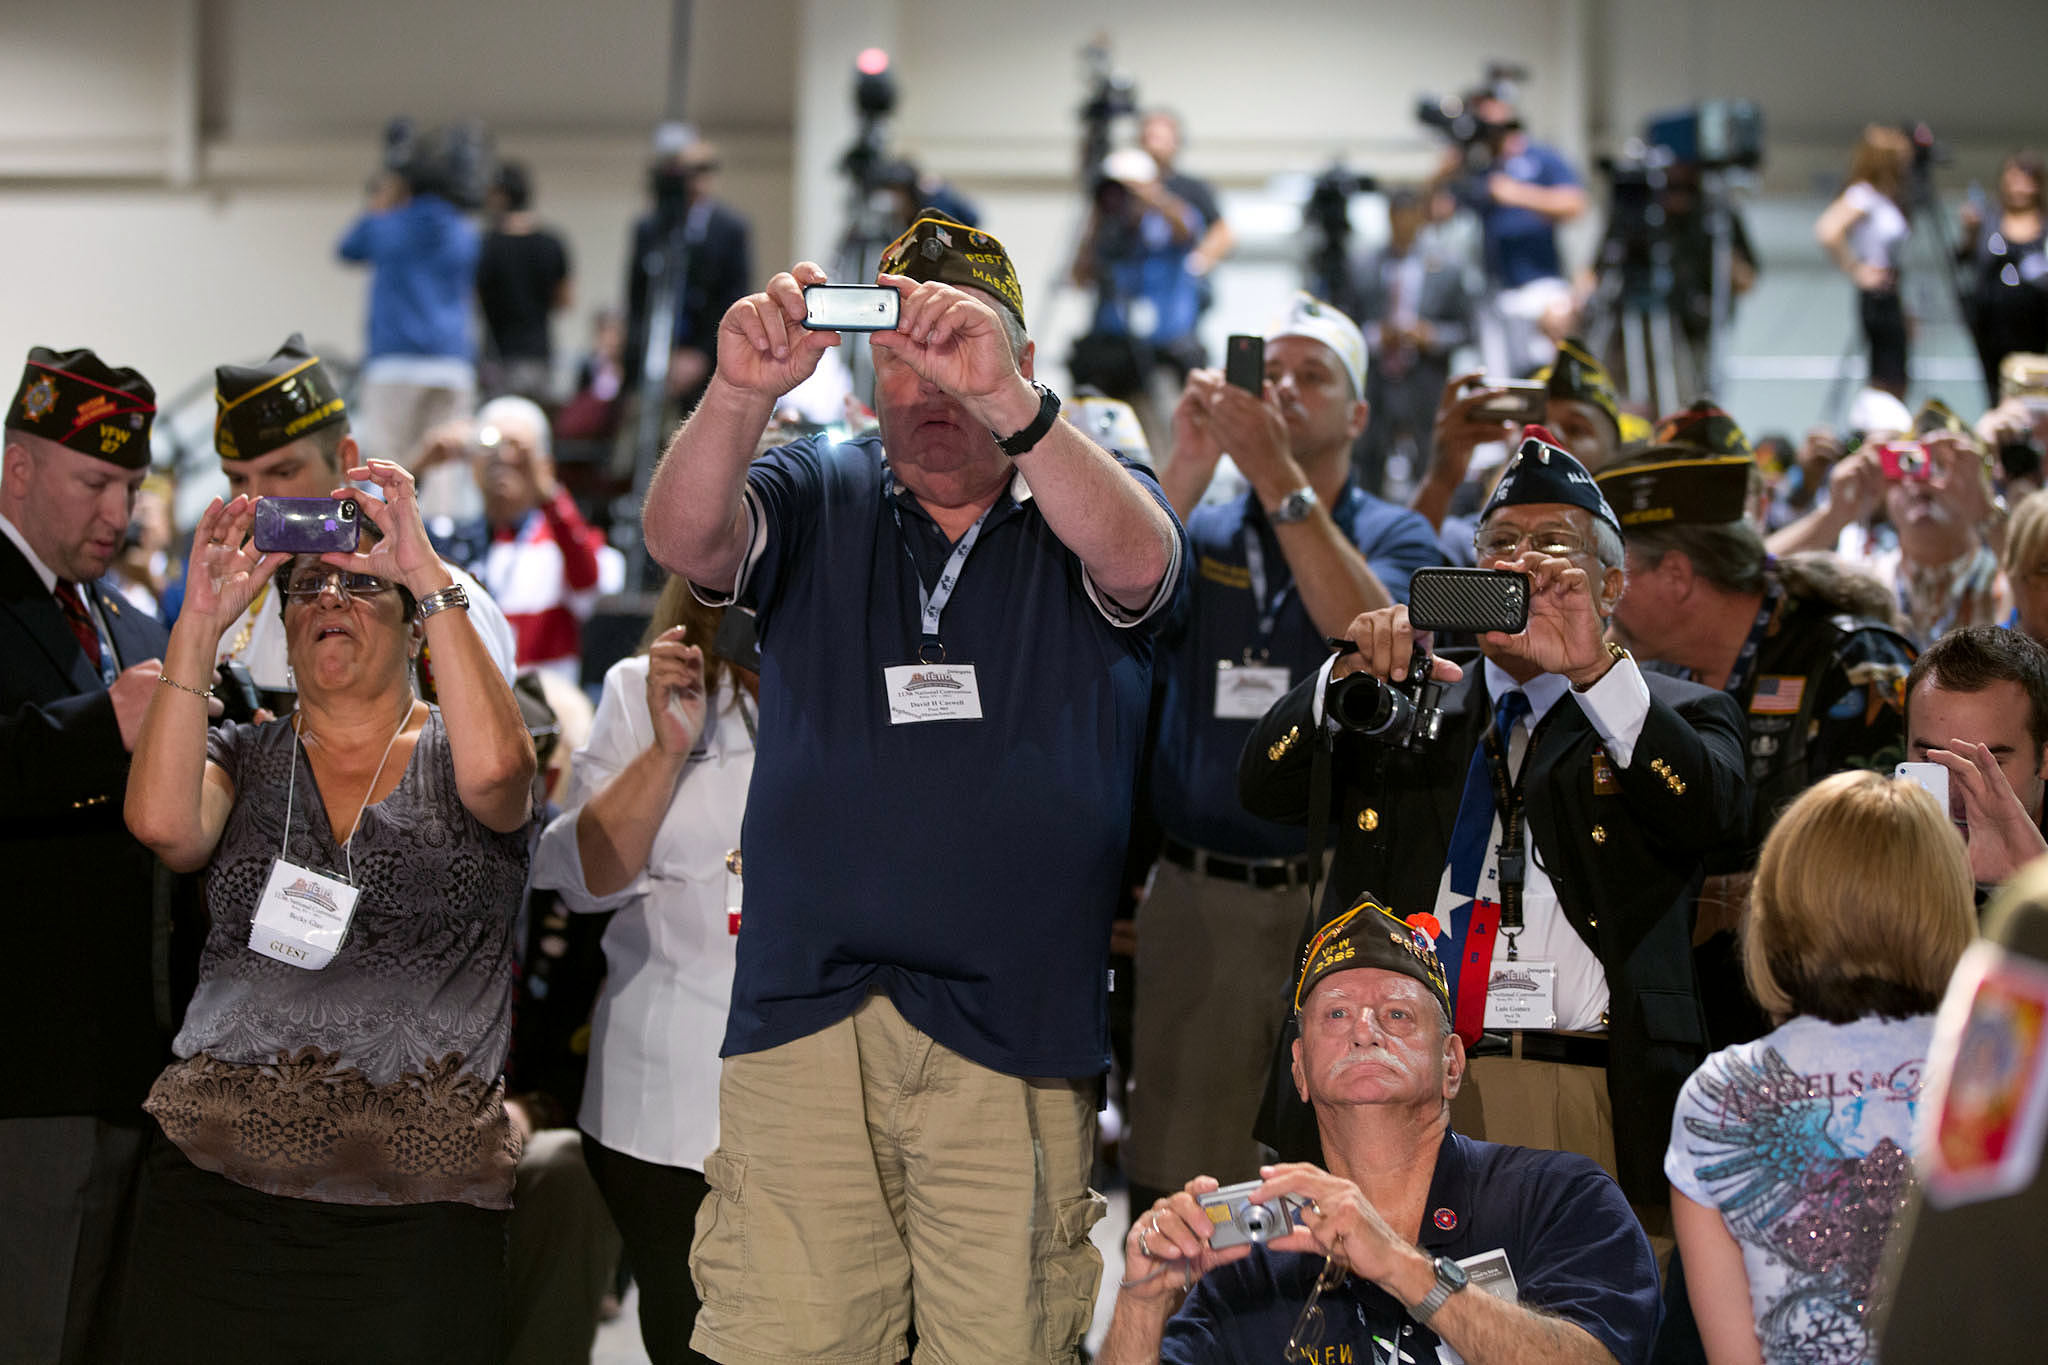 Attendees take photos as President Barack Obama delivers remarks at the 113th National Convention of the Veterans of Foreign Wars